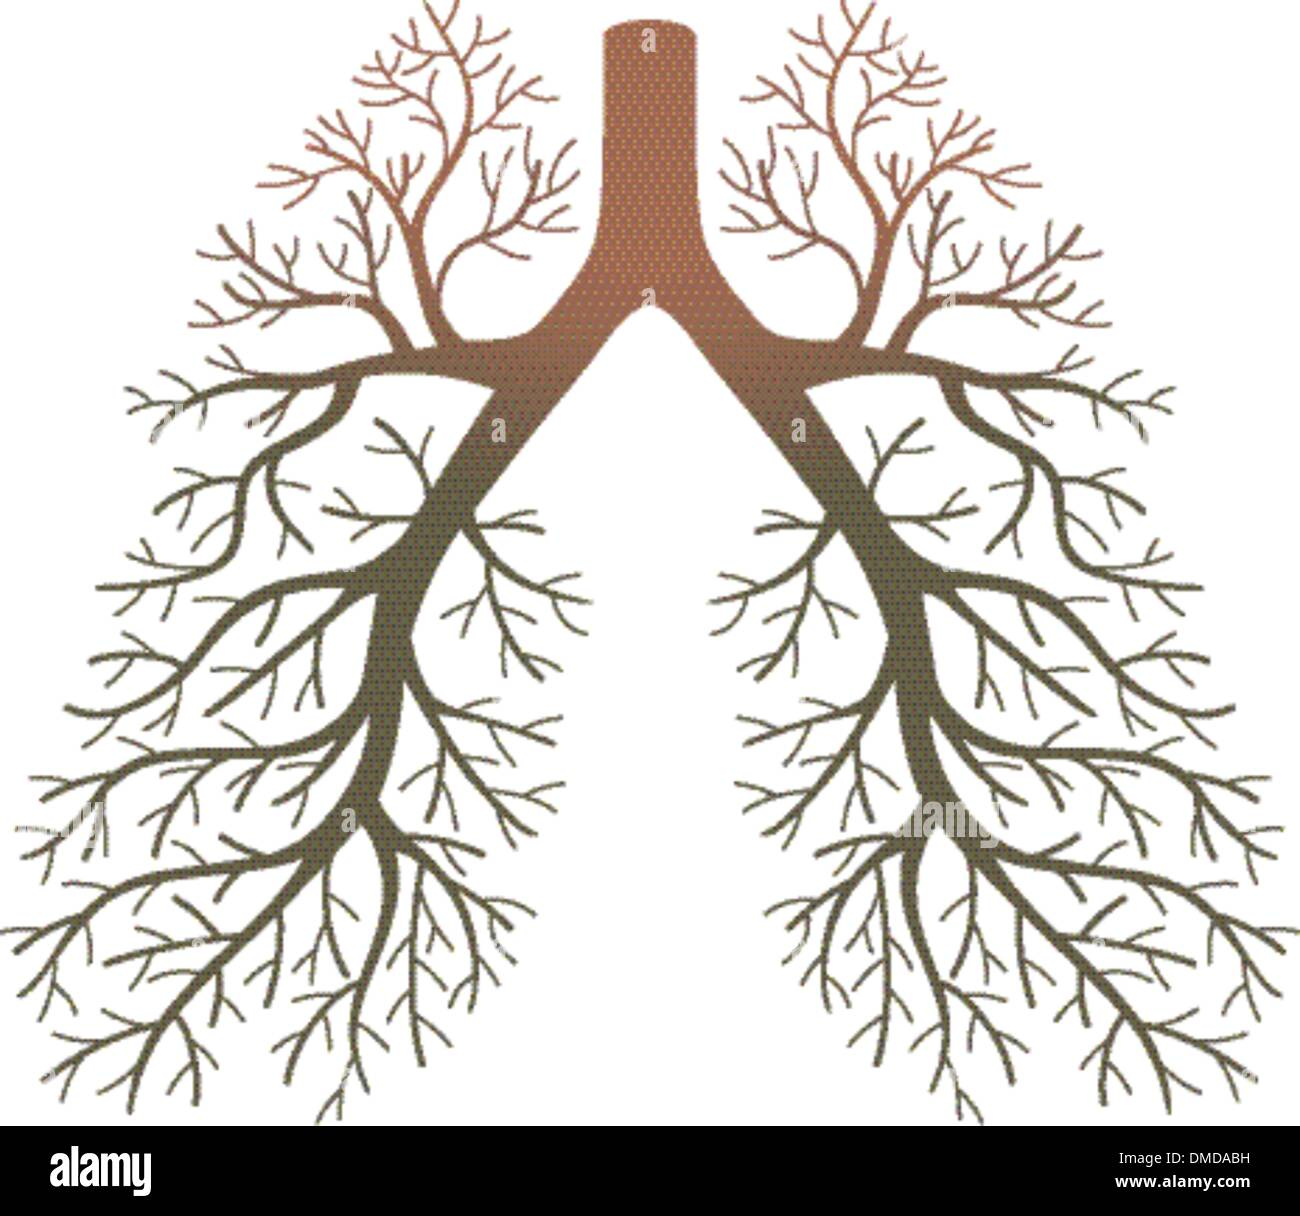 lungs healthy - Stock Image